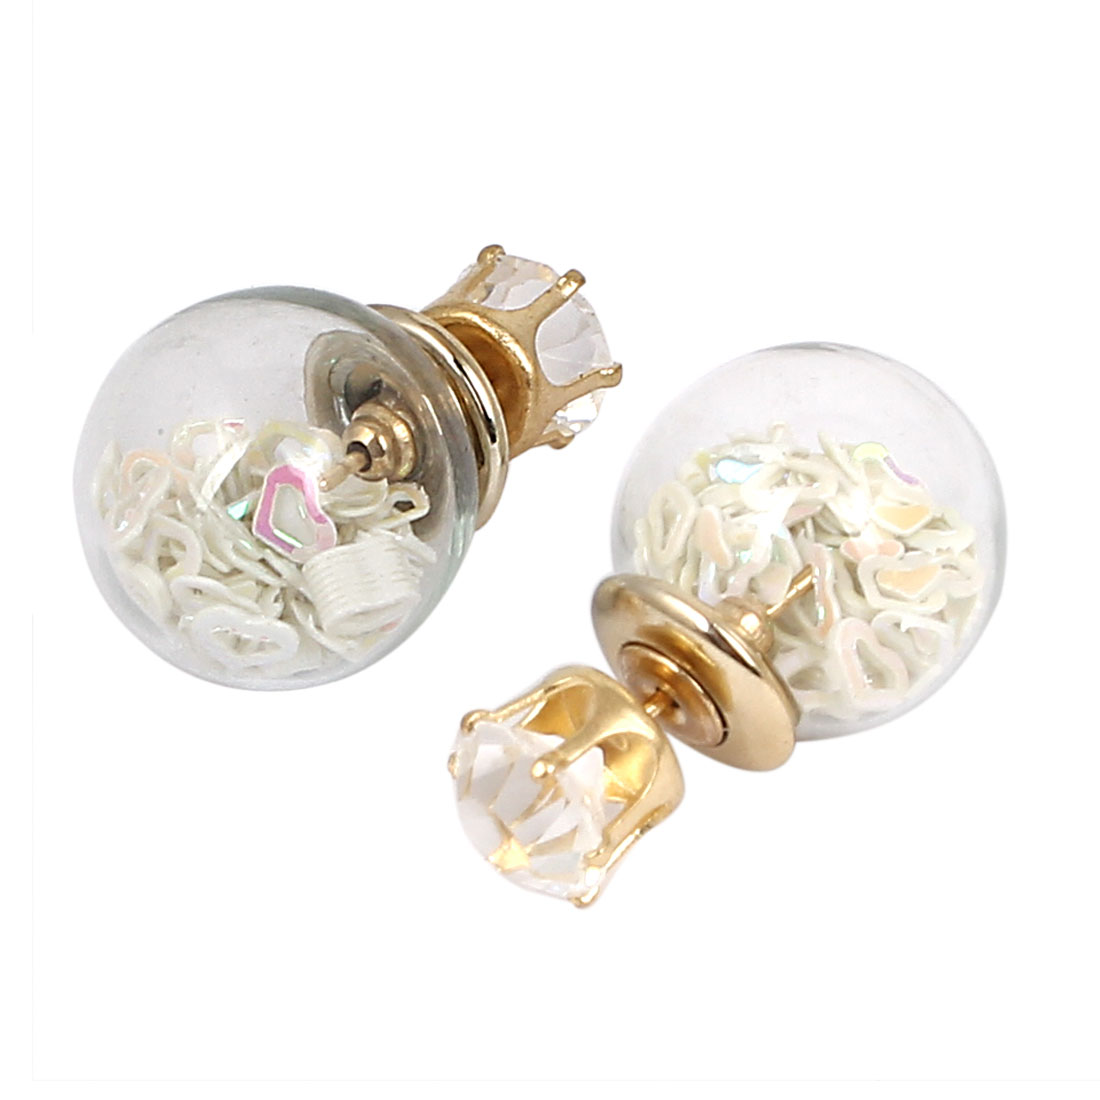 Women Faux Crystal Decor Round Bulb Shape Double Sides Stud Earrings White Pair